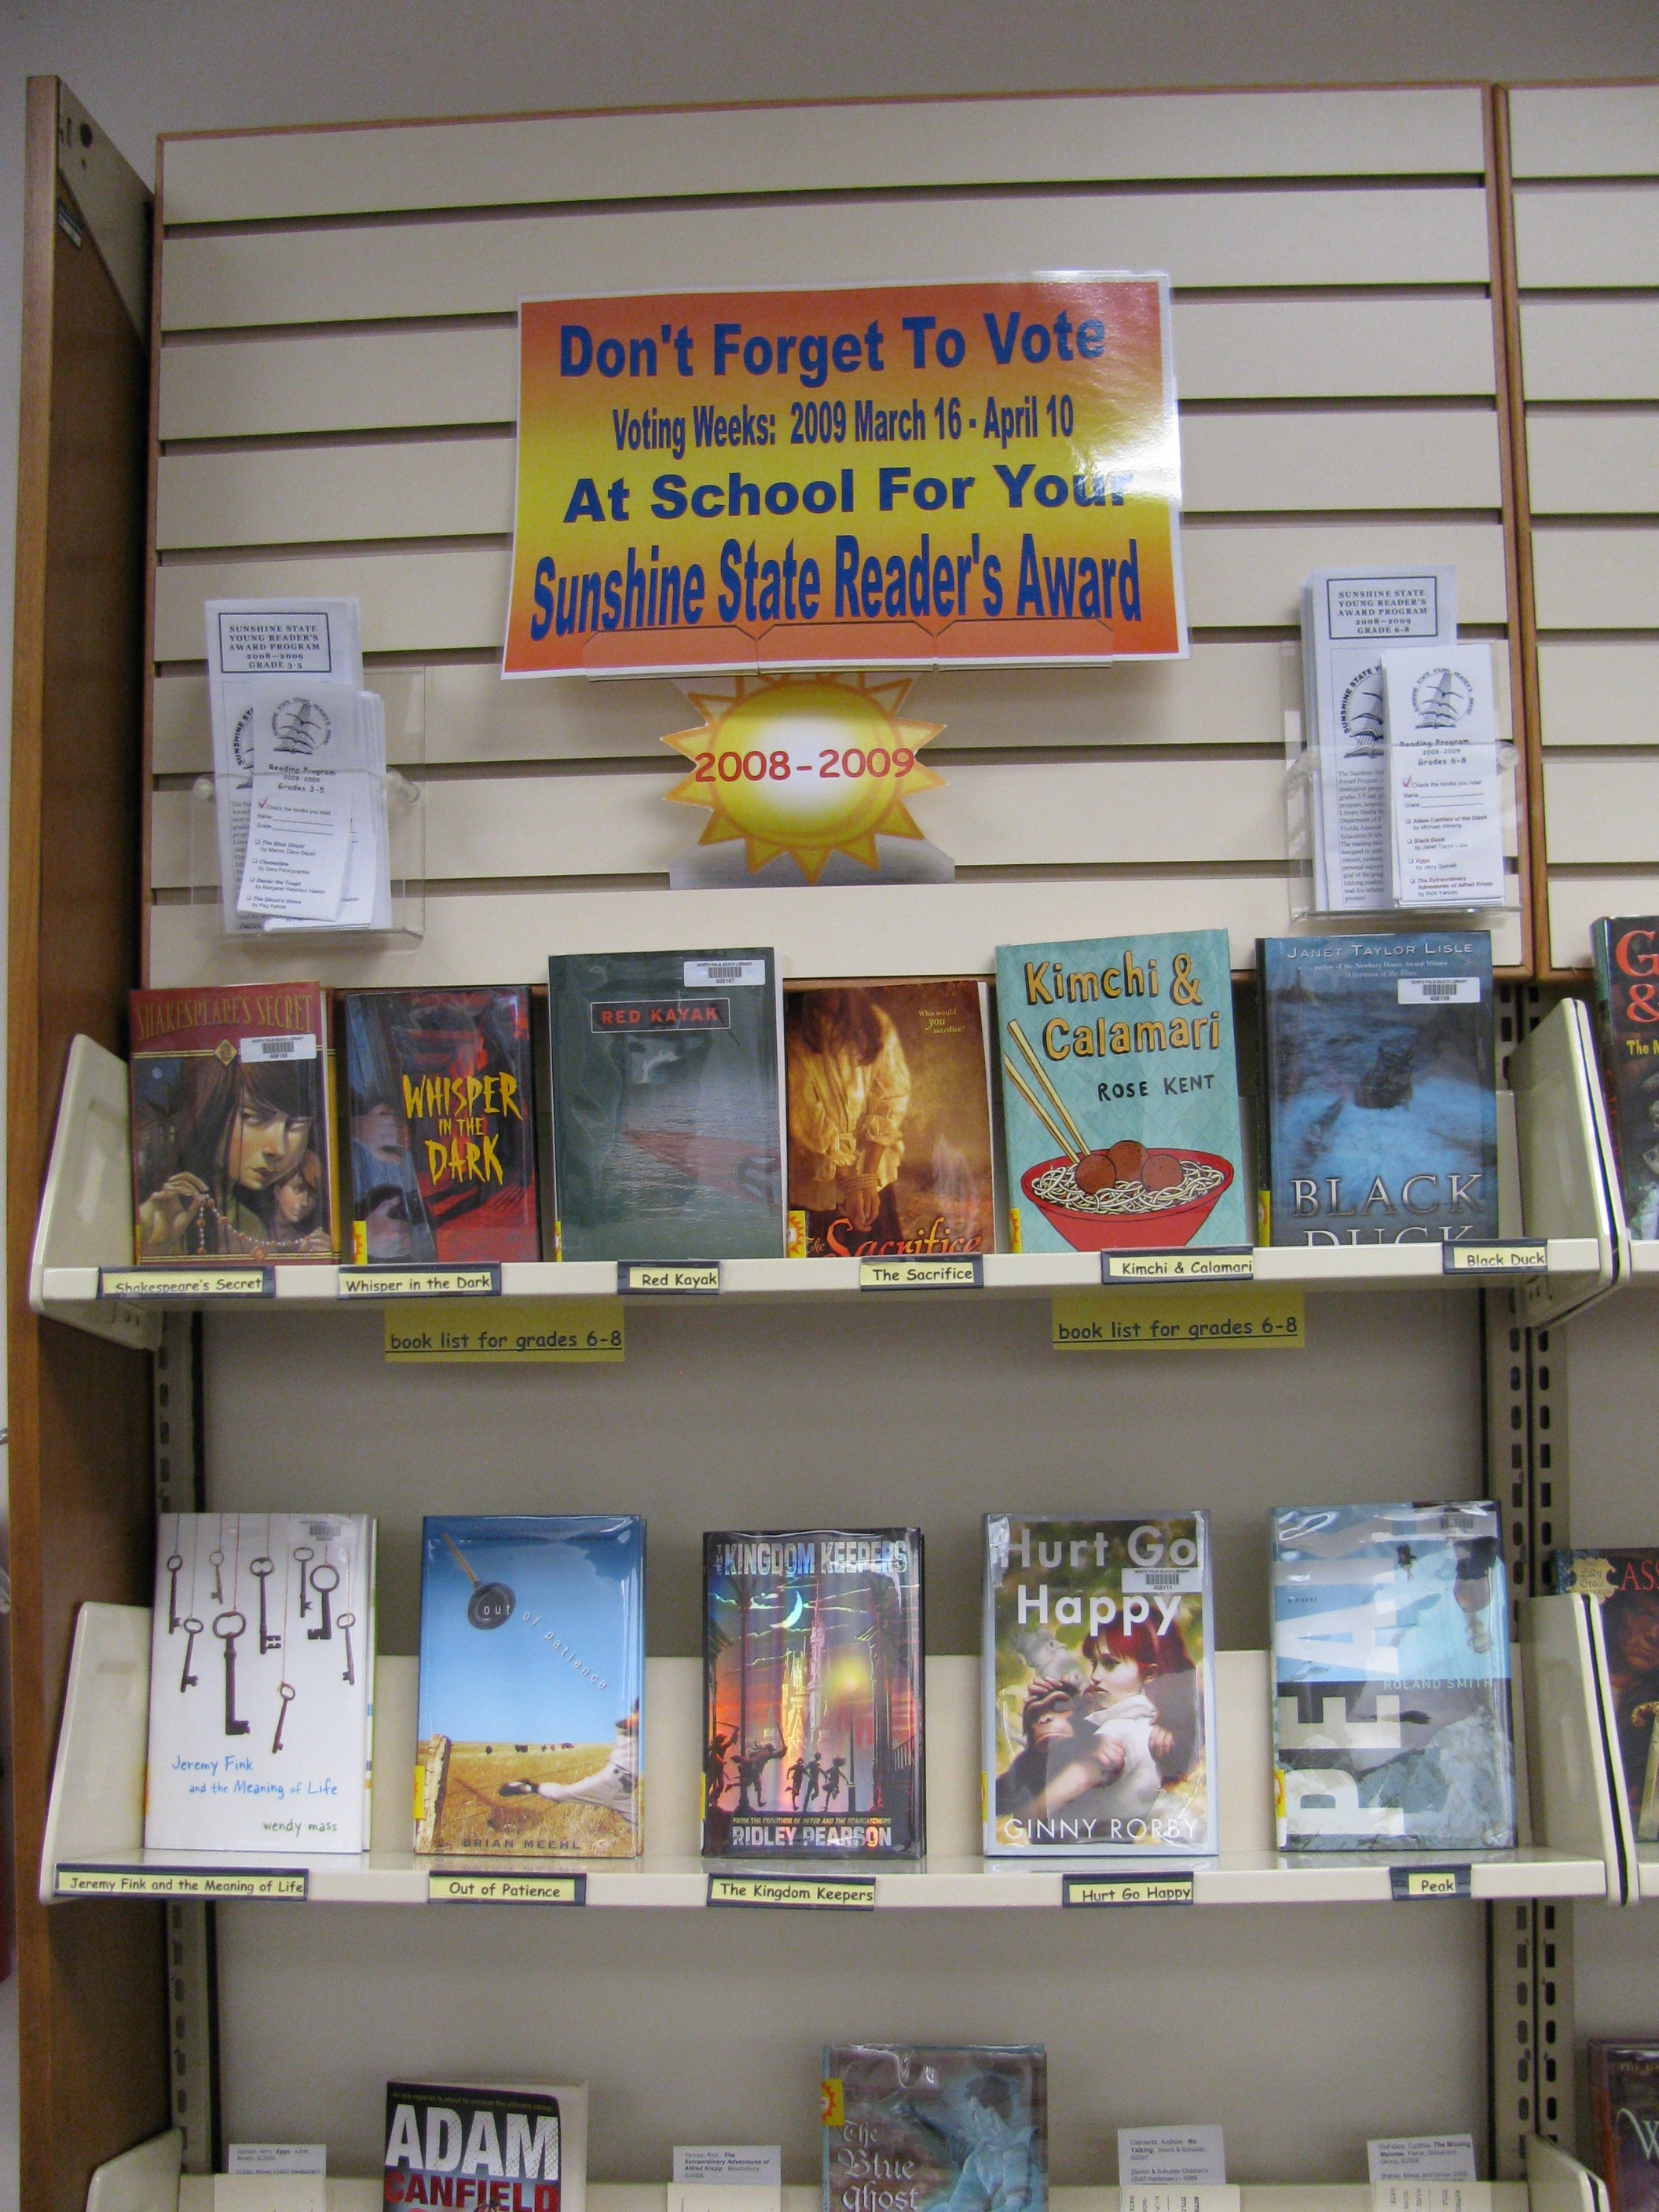 Books with Sunshine State Reader's Award poster above shelf